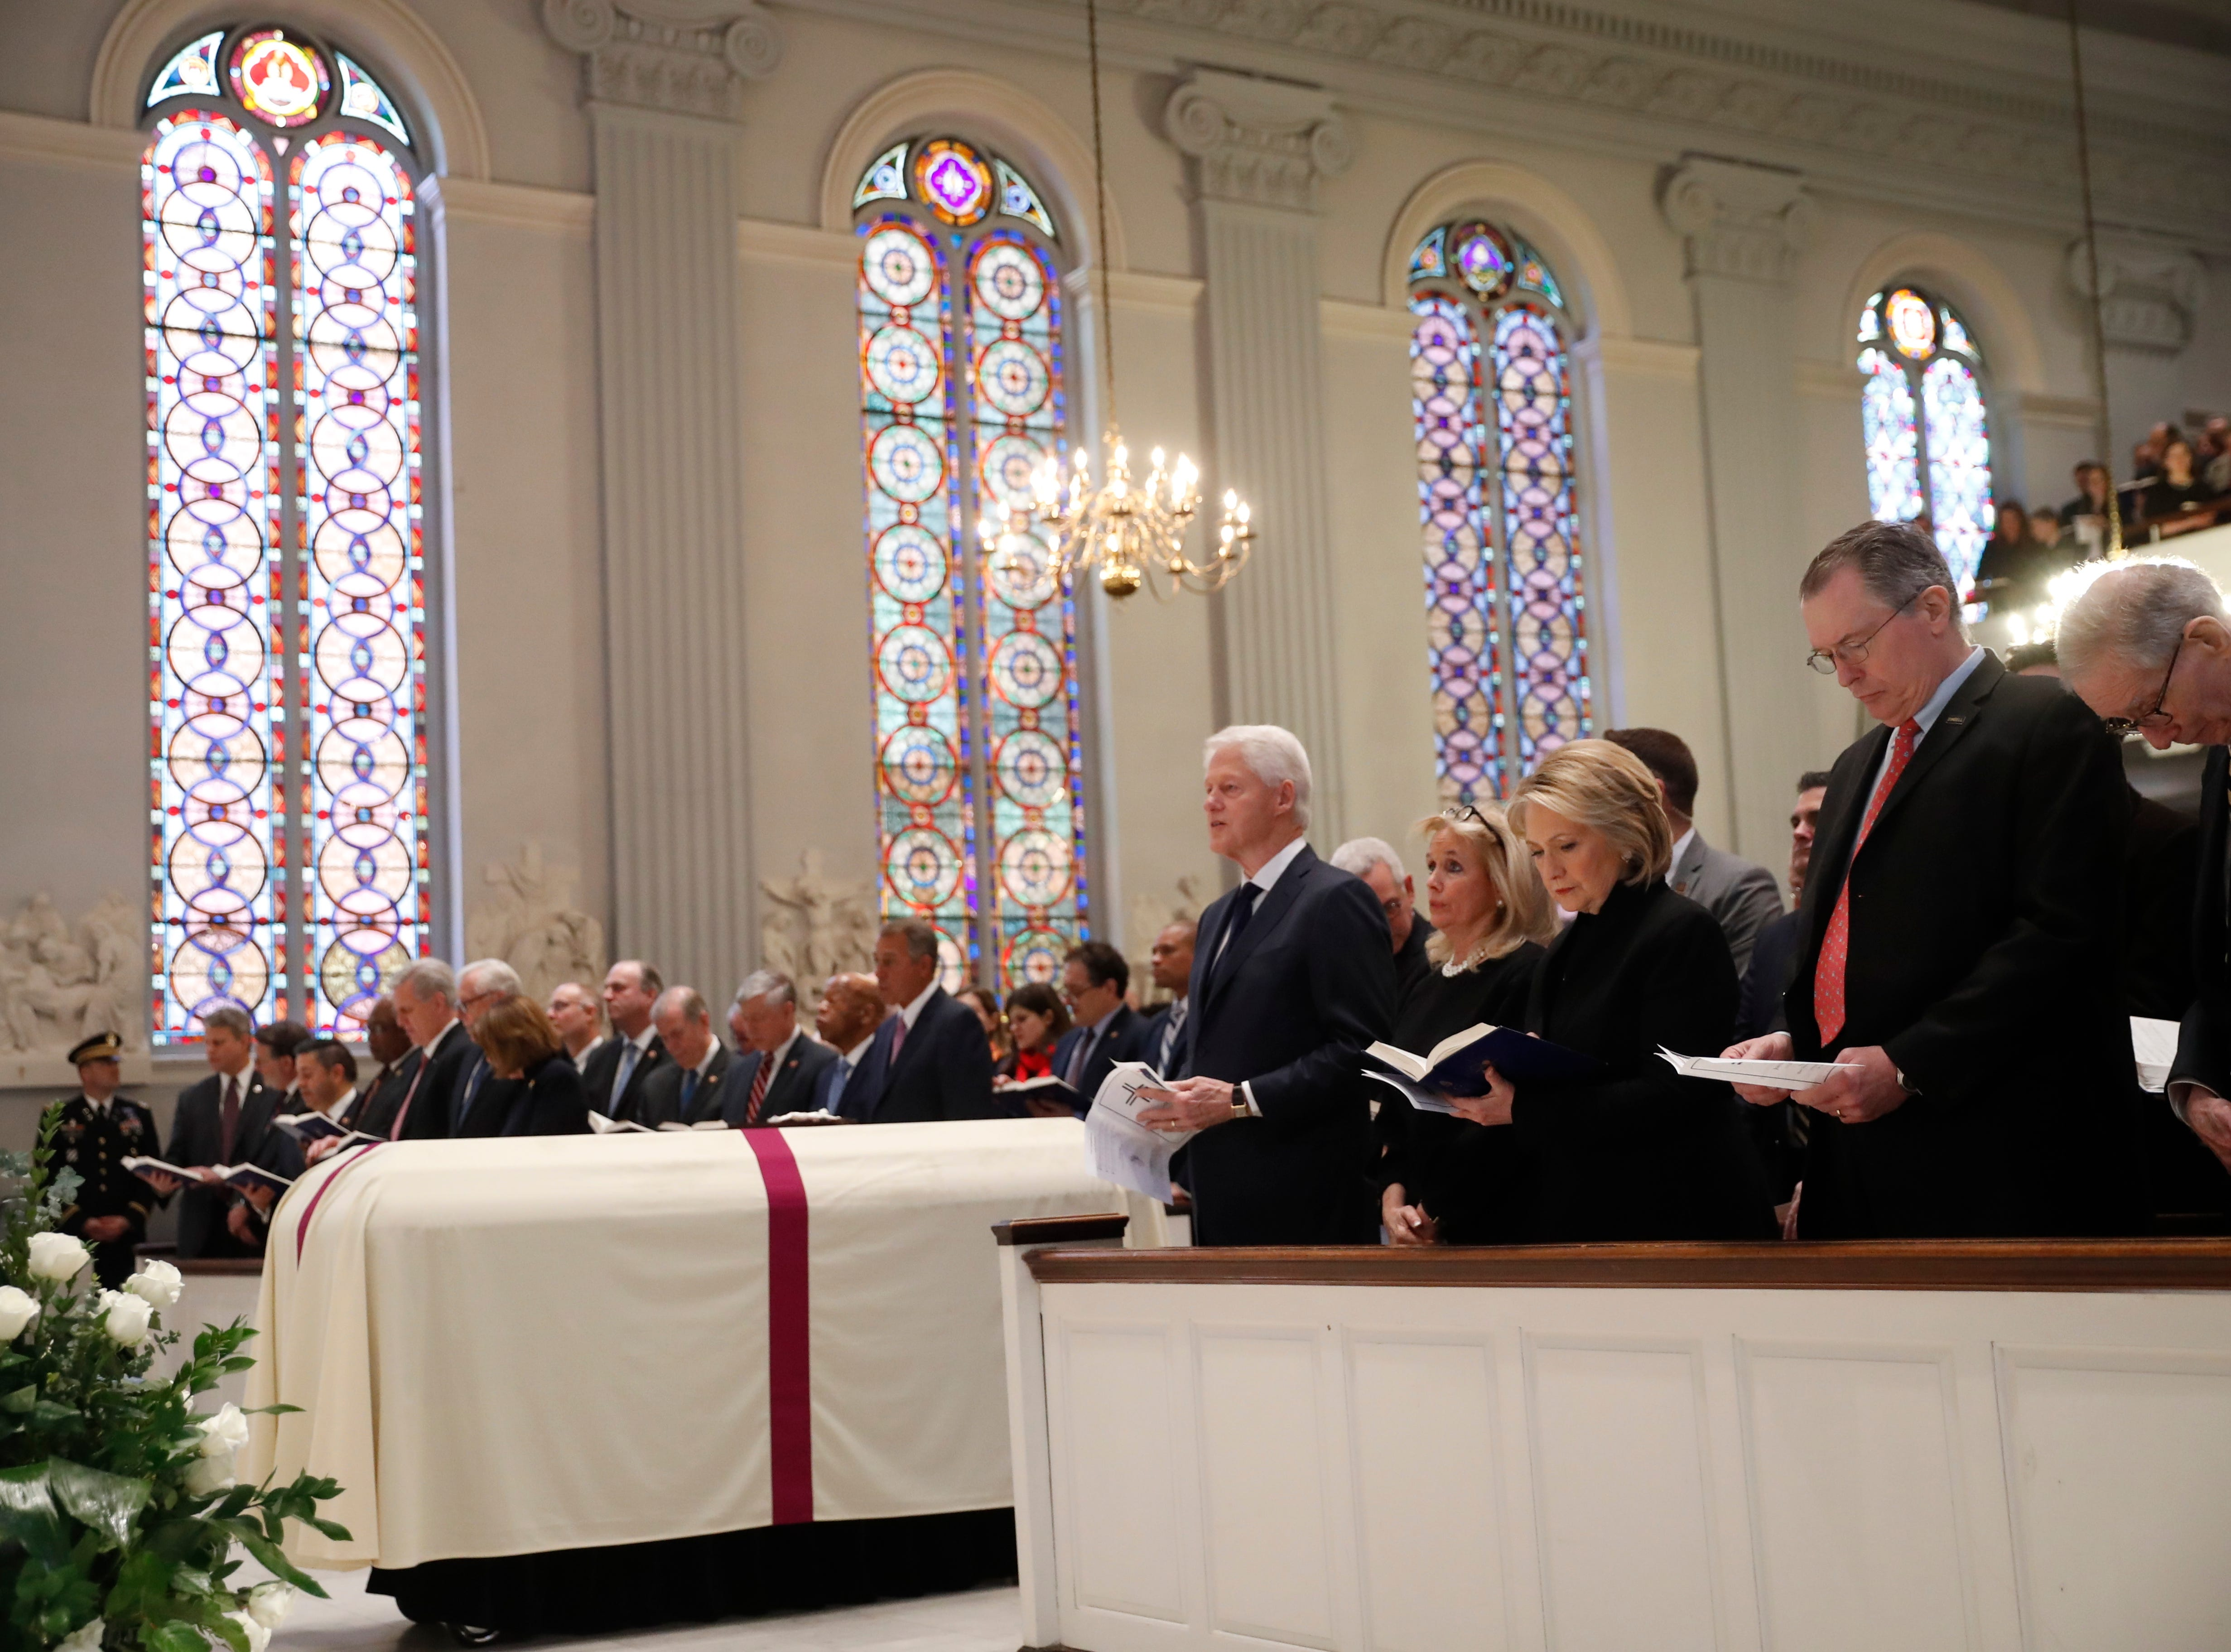 Rep. Debbie Dingell, D-Dearborn, center, stands with former President Bill Clinton and former Secretary of State Hillary Clinton, and other family members, during John Dingell's funeral in Washington, D.C.